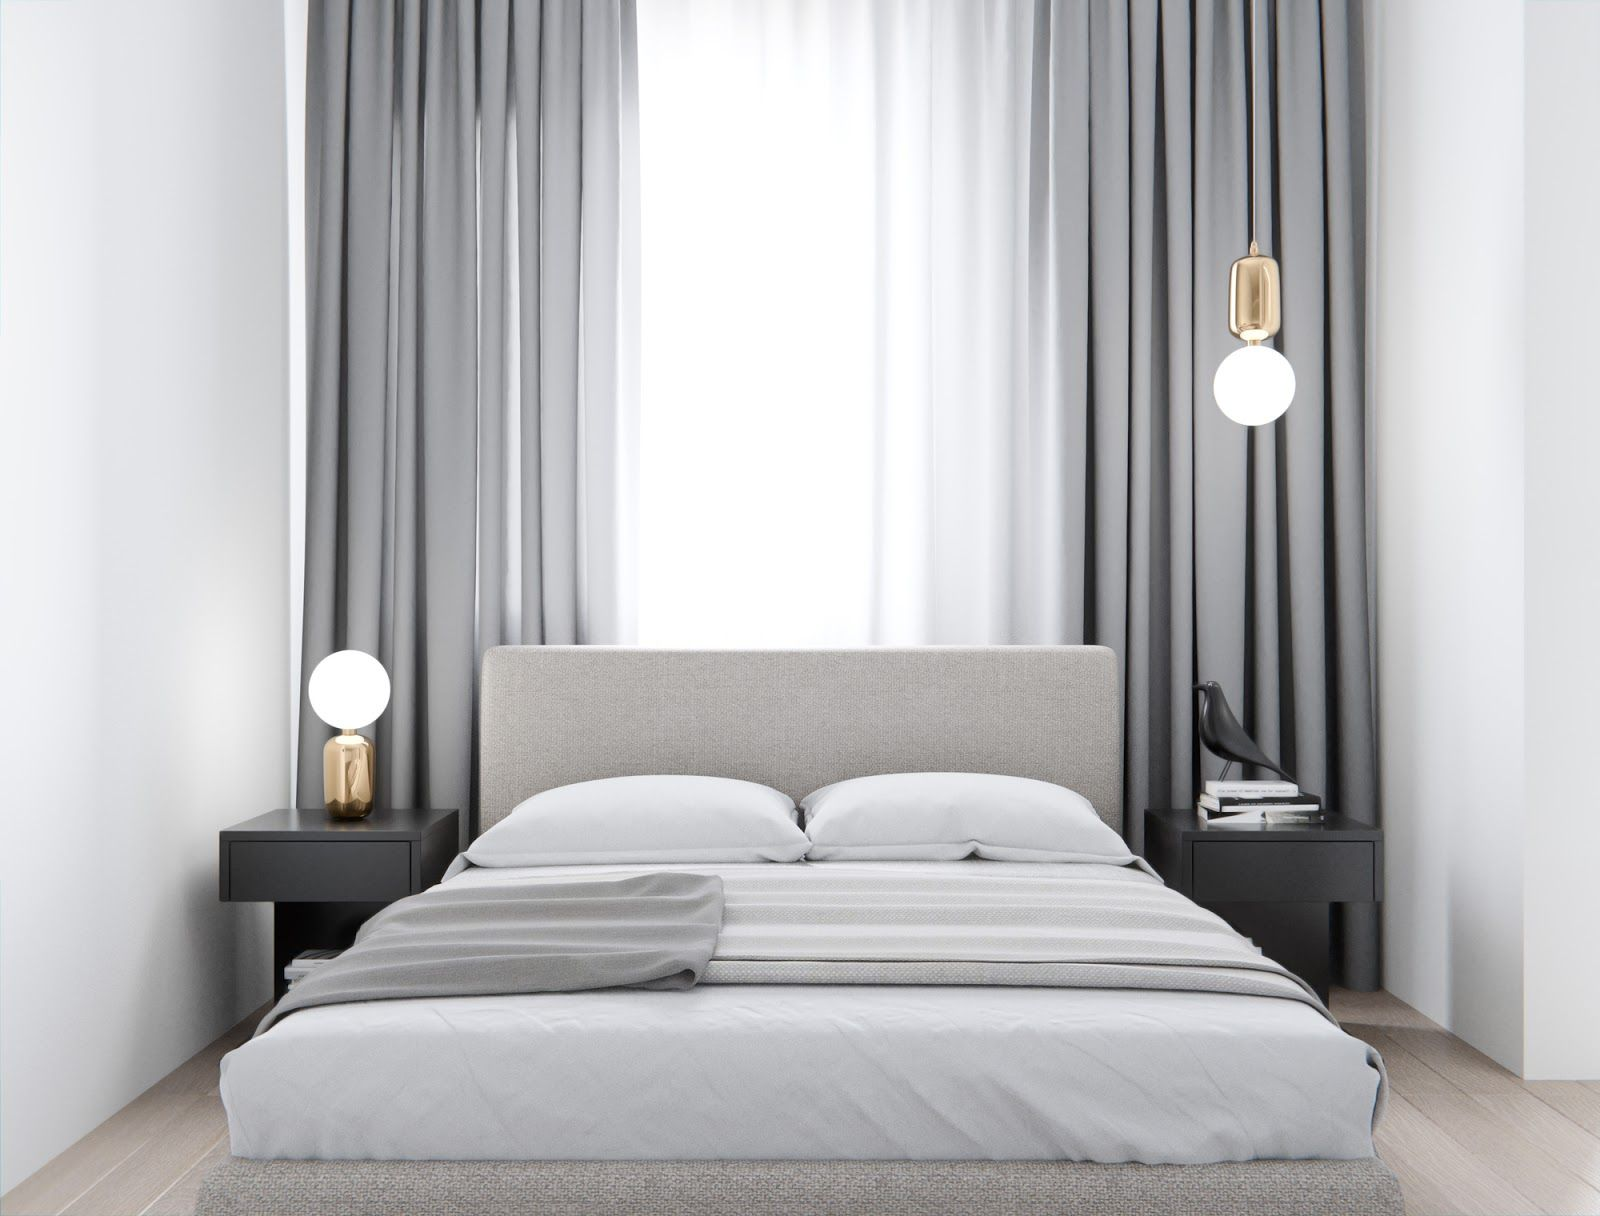 35 Cheap Bedroom Ideas for Small Rooms | Modern Urban ... on Cheap Bedroom Ideas For Small Rooms  id=21399